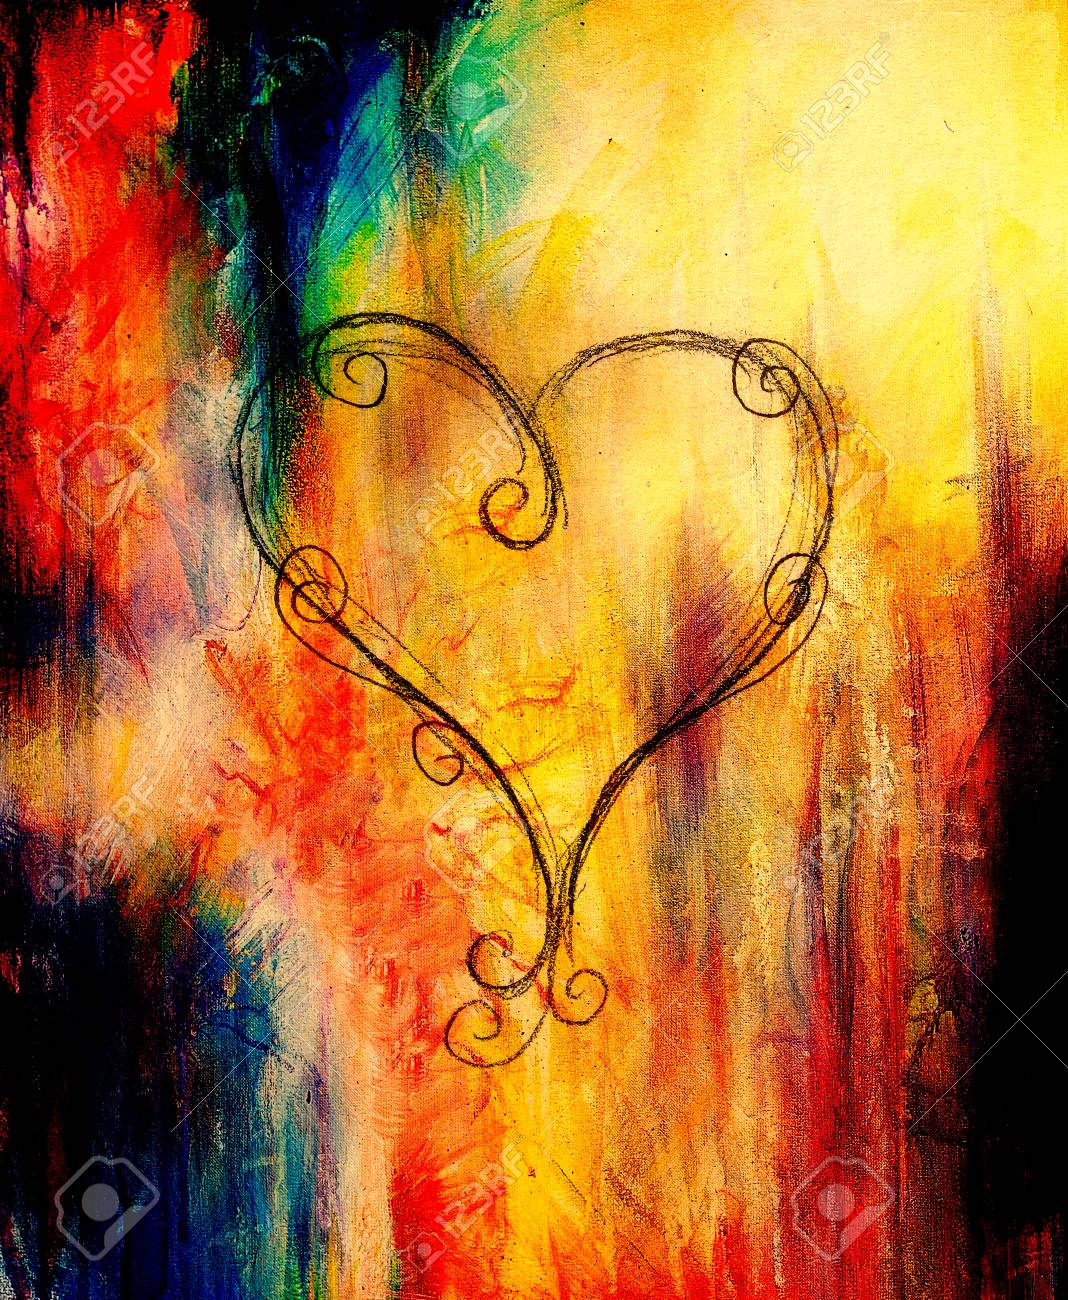 Heart drawing pencil sketch on old paper color effect stock photo 60024576